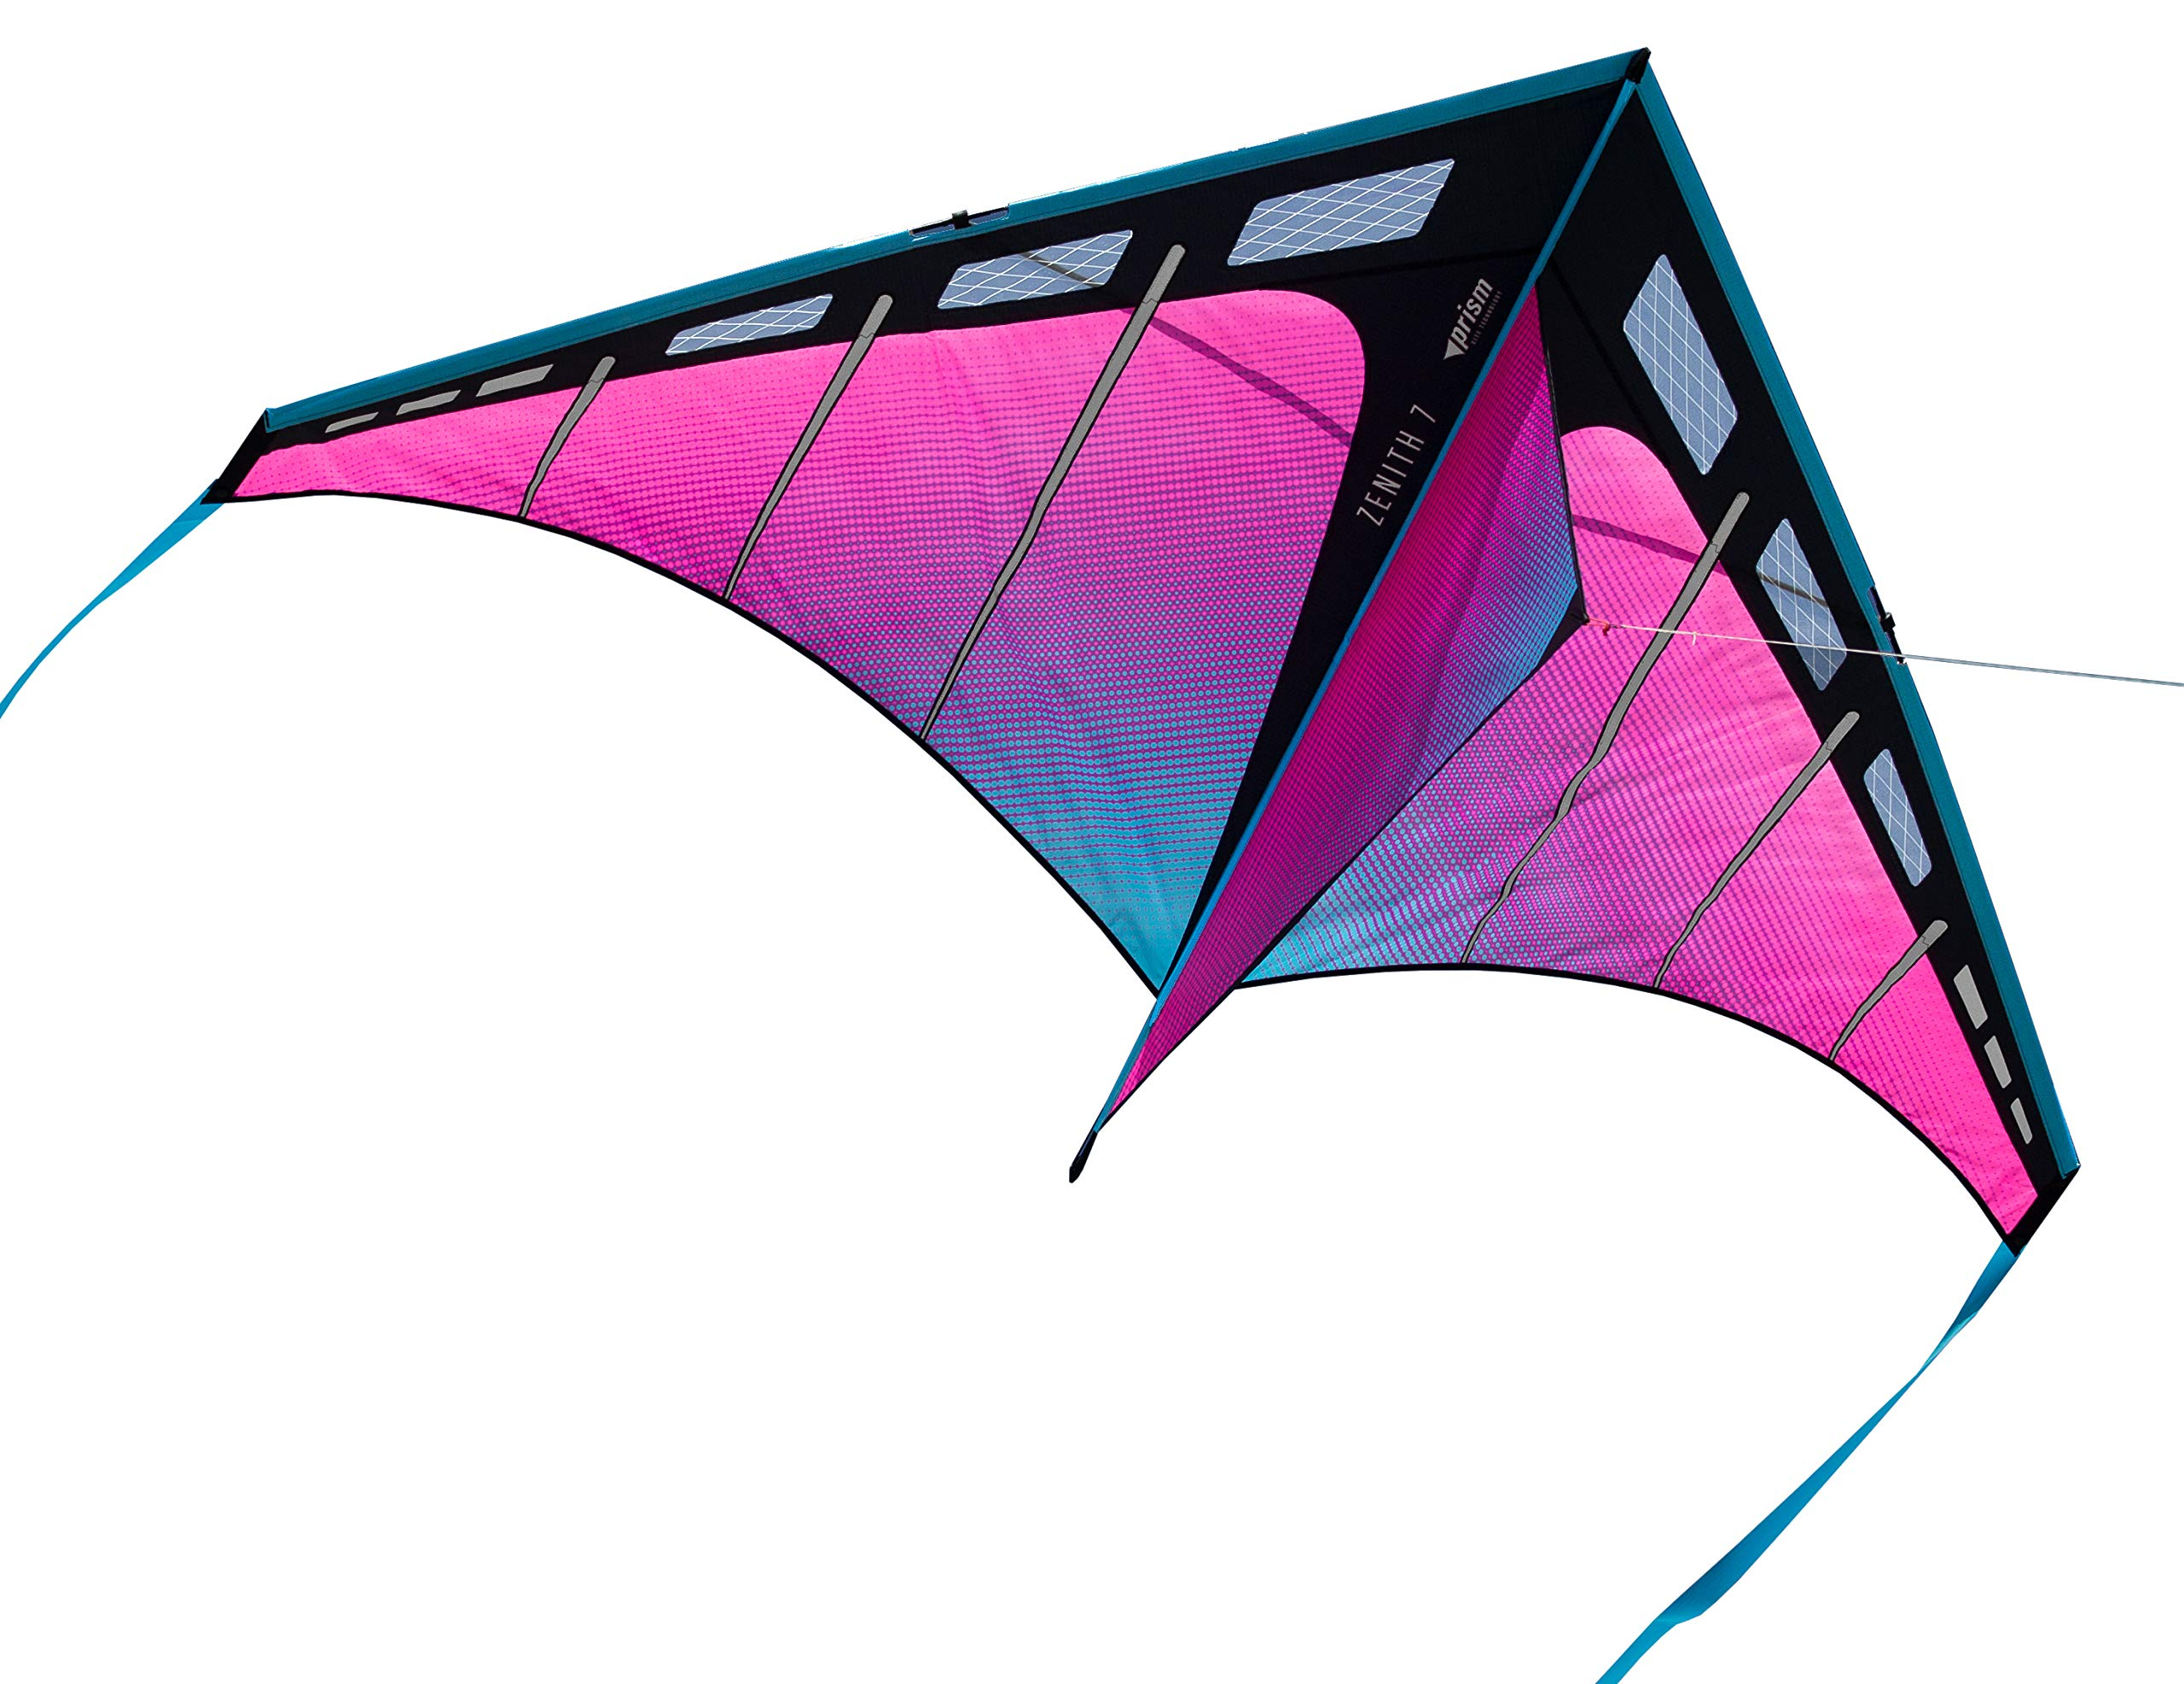 Prism Kite Technology Zenith 7 Ultraviolet Single Line Kite, Ready to Fly with line, Winder and Travel Sleeve by Prism Kite Technology